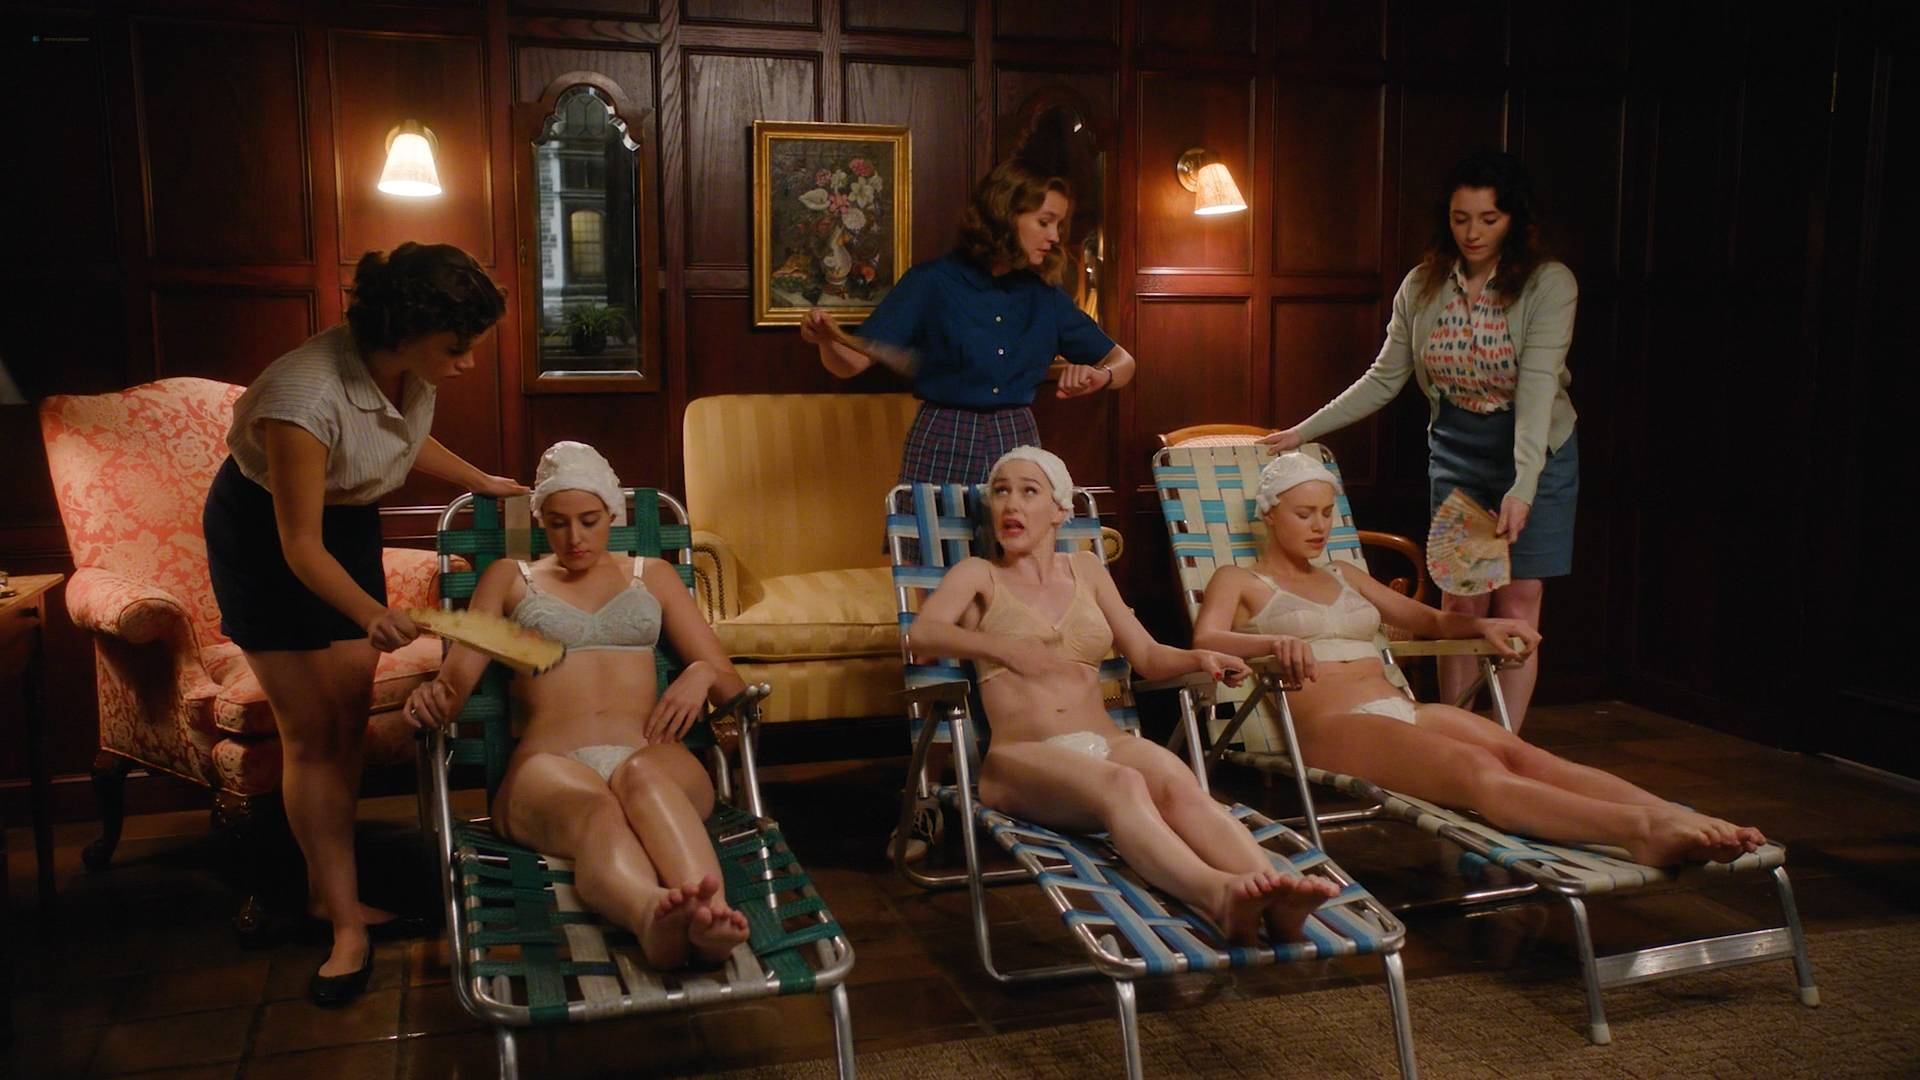 Rachel-Brosnahan-nude-topless-and-butt-Kyla-Walker-hot-The-Marvelous-Mrs-Maisel-2017-s1e1-HD-1080p-00001.jpg